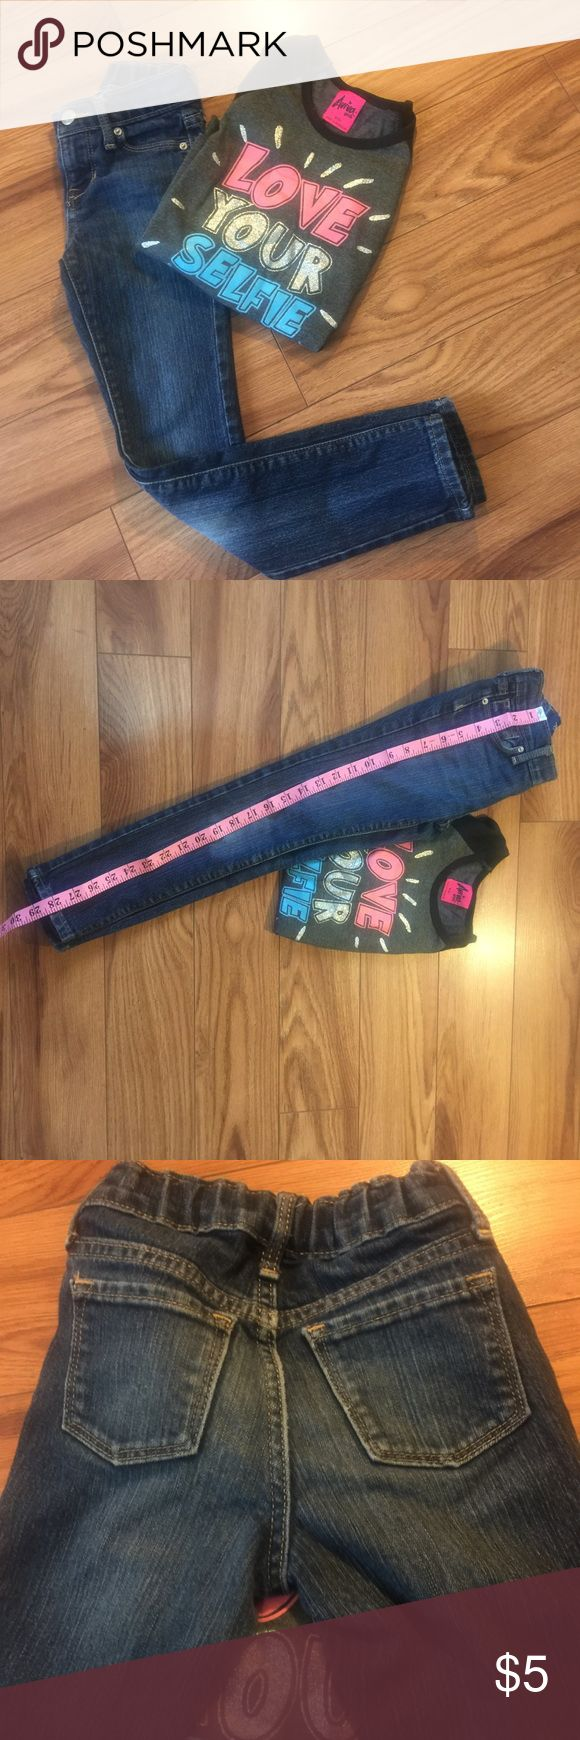 Old  Navy Girls Jeans Old Nacy girl jeans Size 7 slim. Have been washed a couple of times but still in good condition. Measurements included in photos. No trades Old Navy Bottoms Jeans